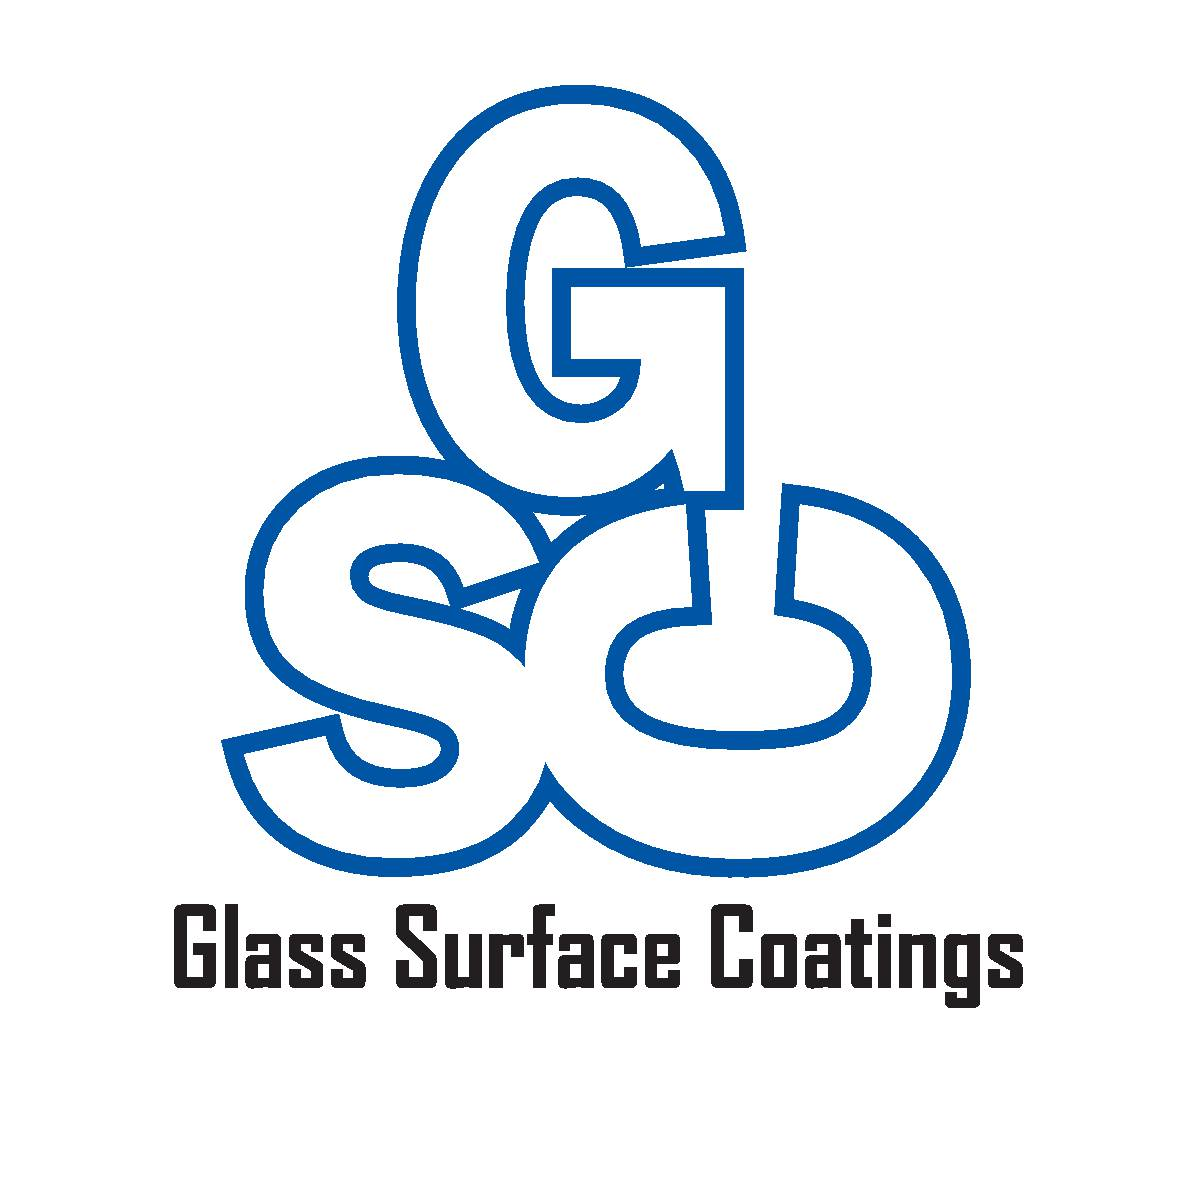 Glass Surface Coatings